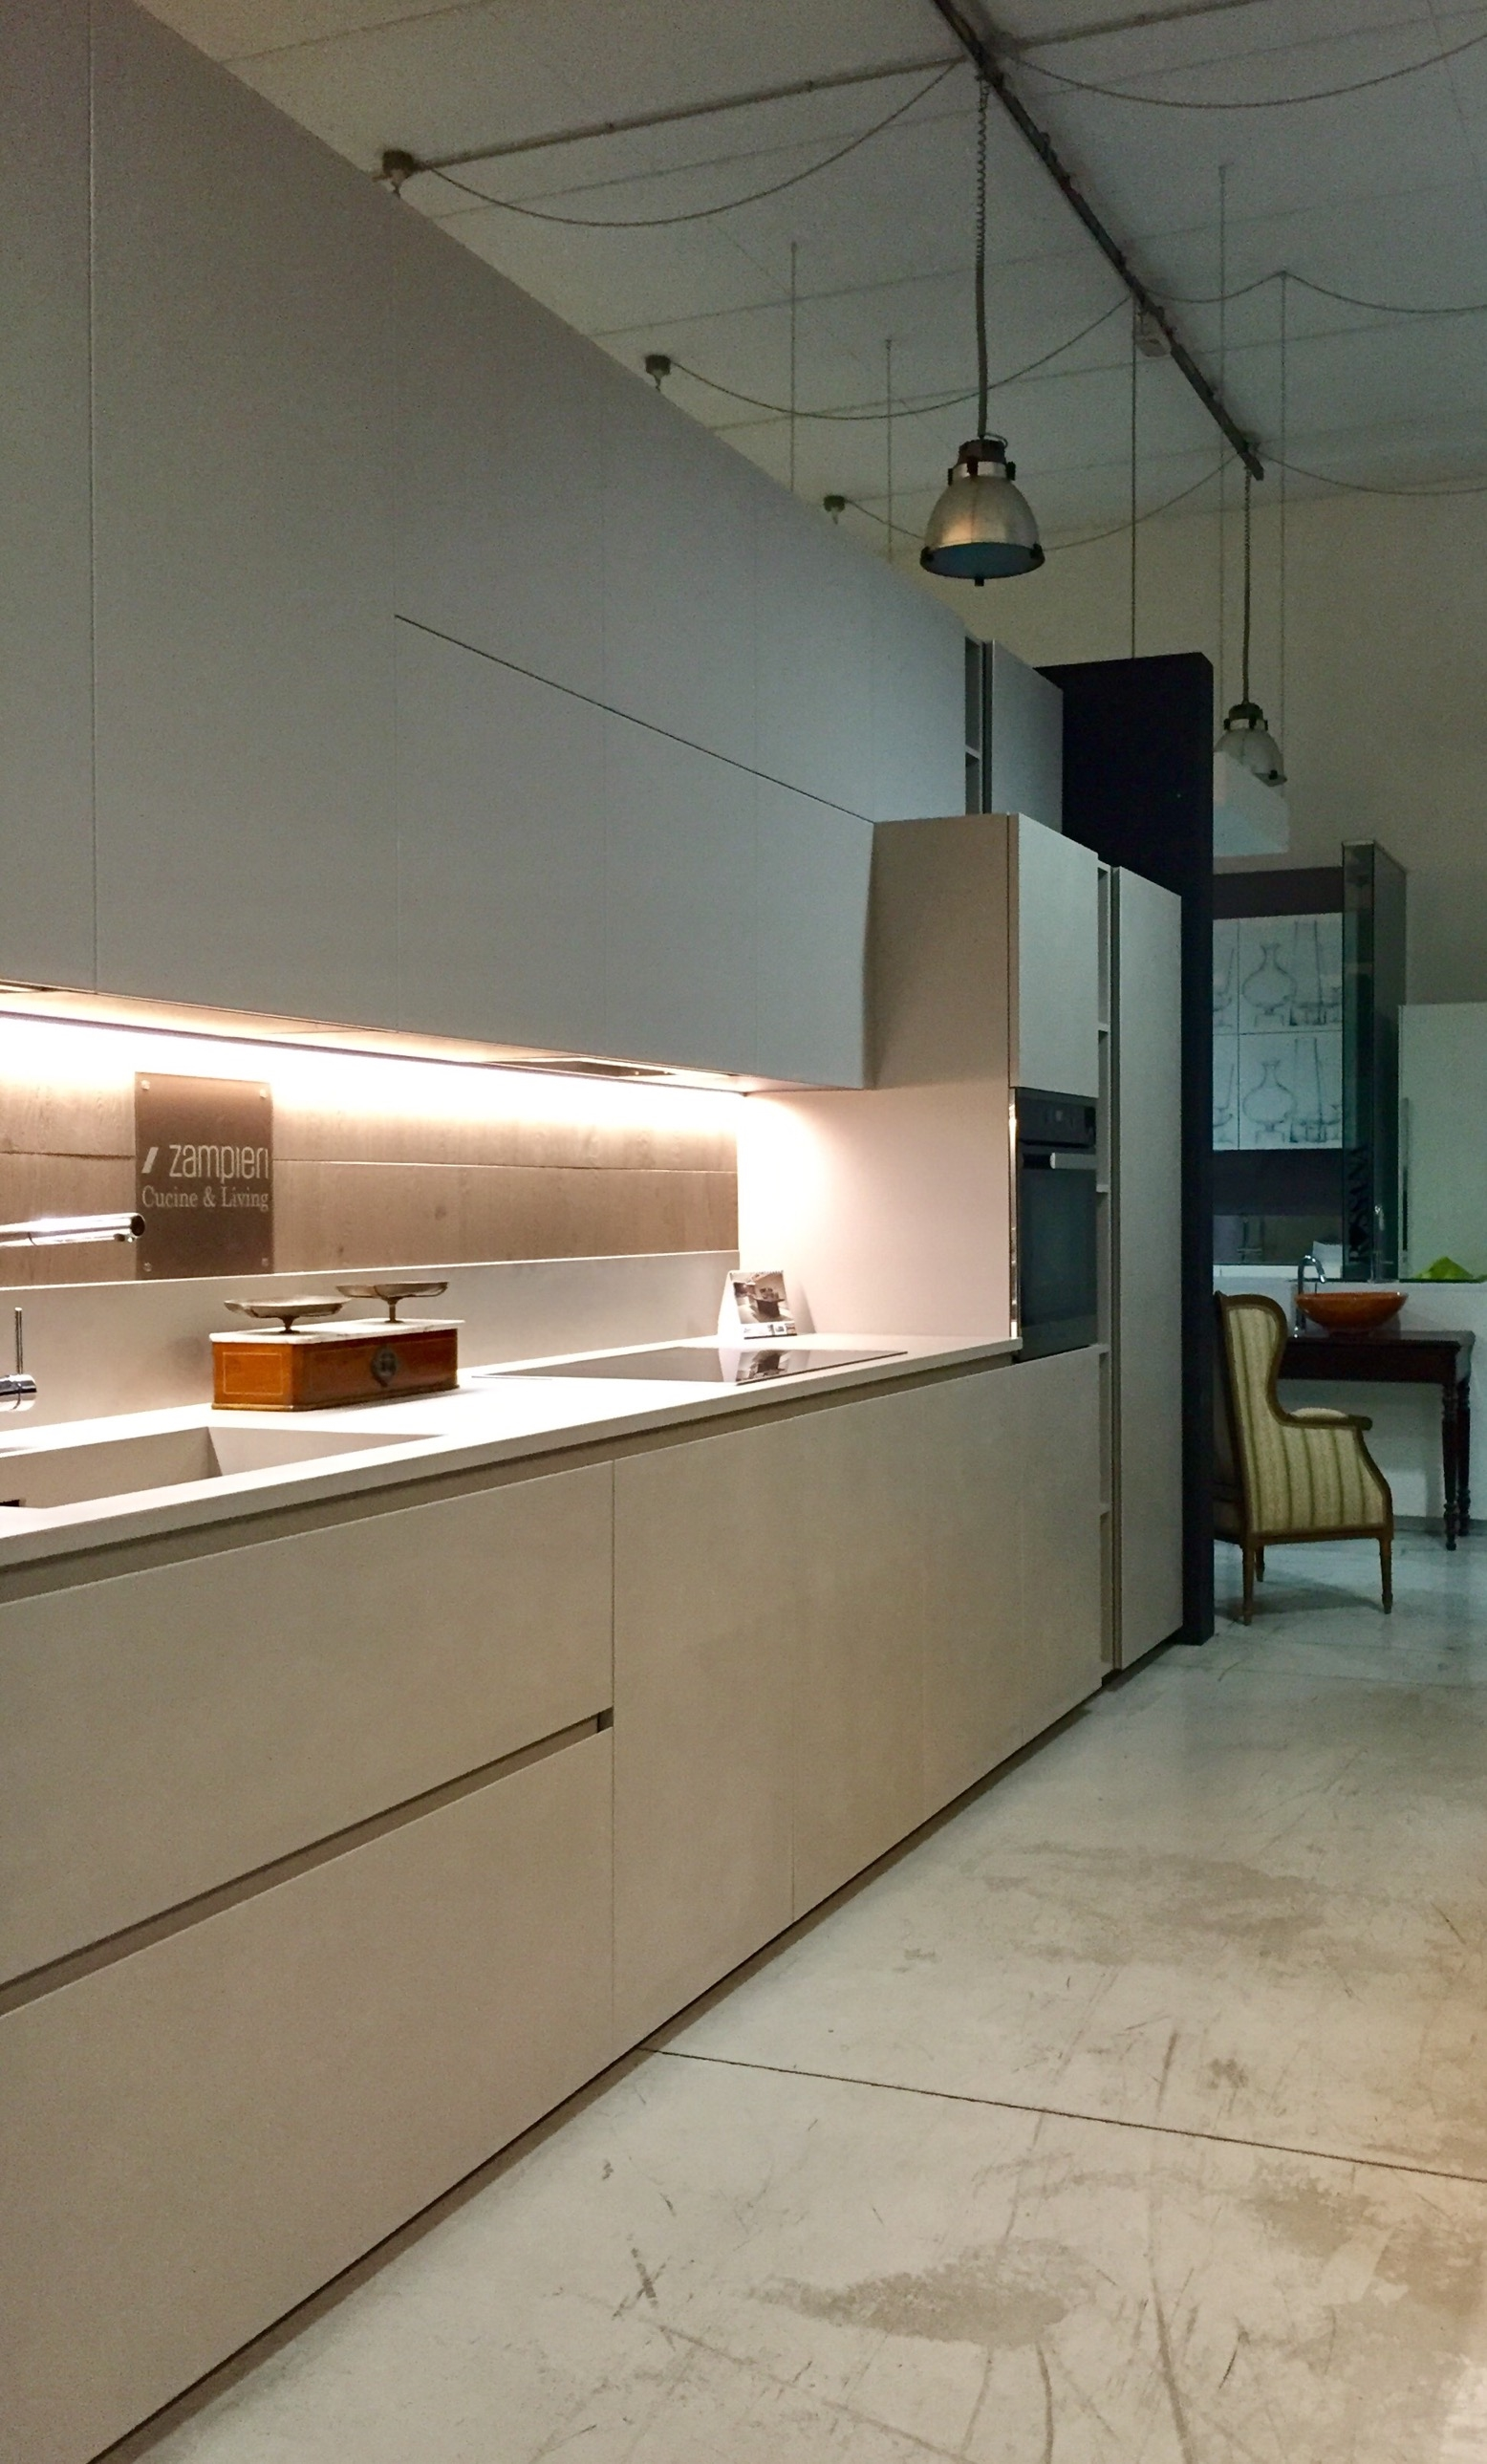 Awesome cucine in kerlite photos - Cucine in stile ...